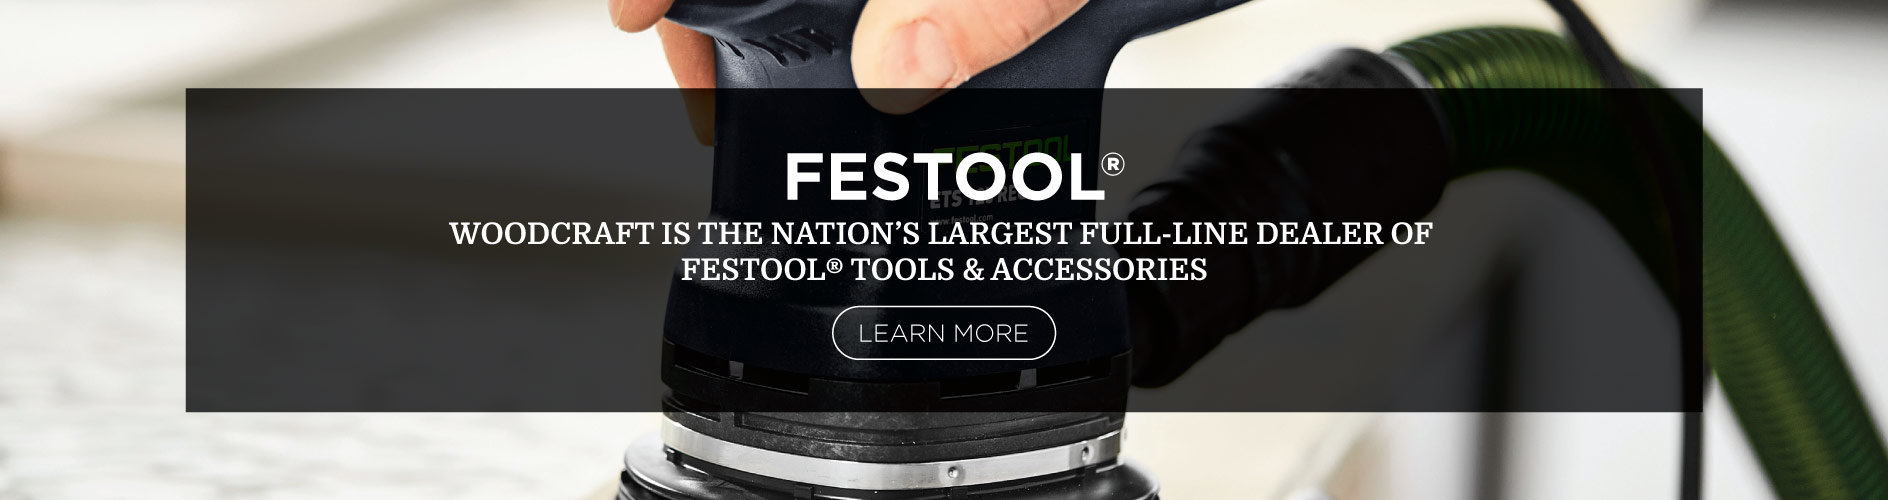 Woodcraft is the Nation's Largest Full-Line Dealer of Festool Tools & Accessories